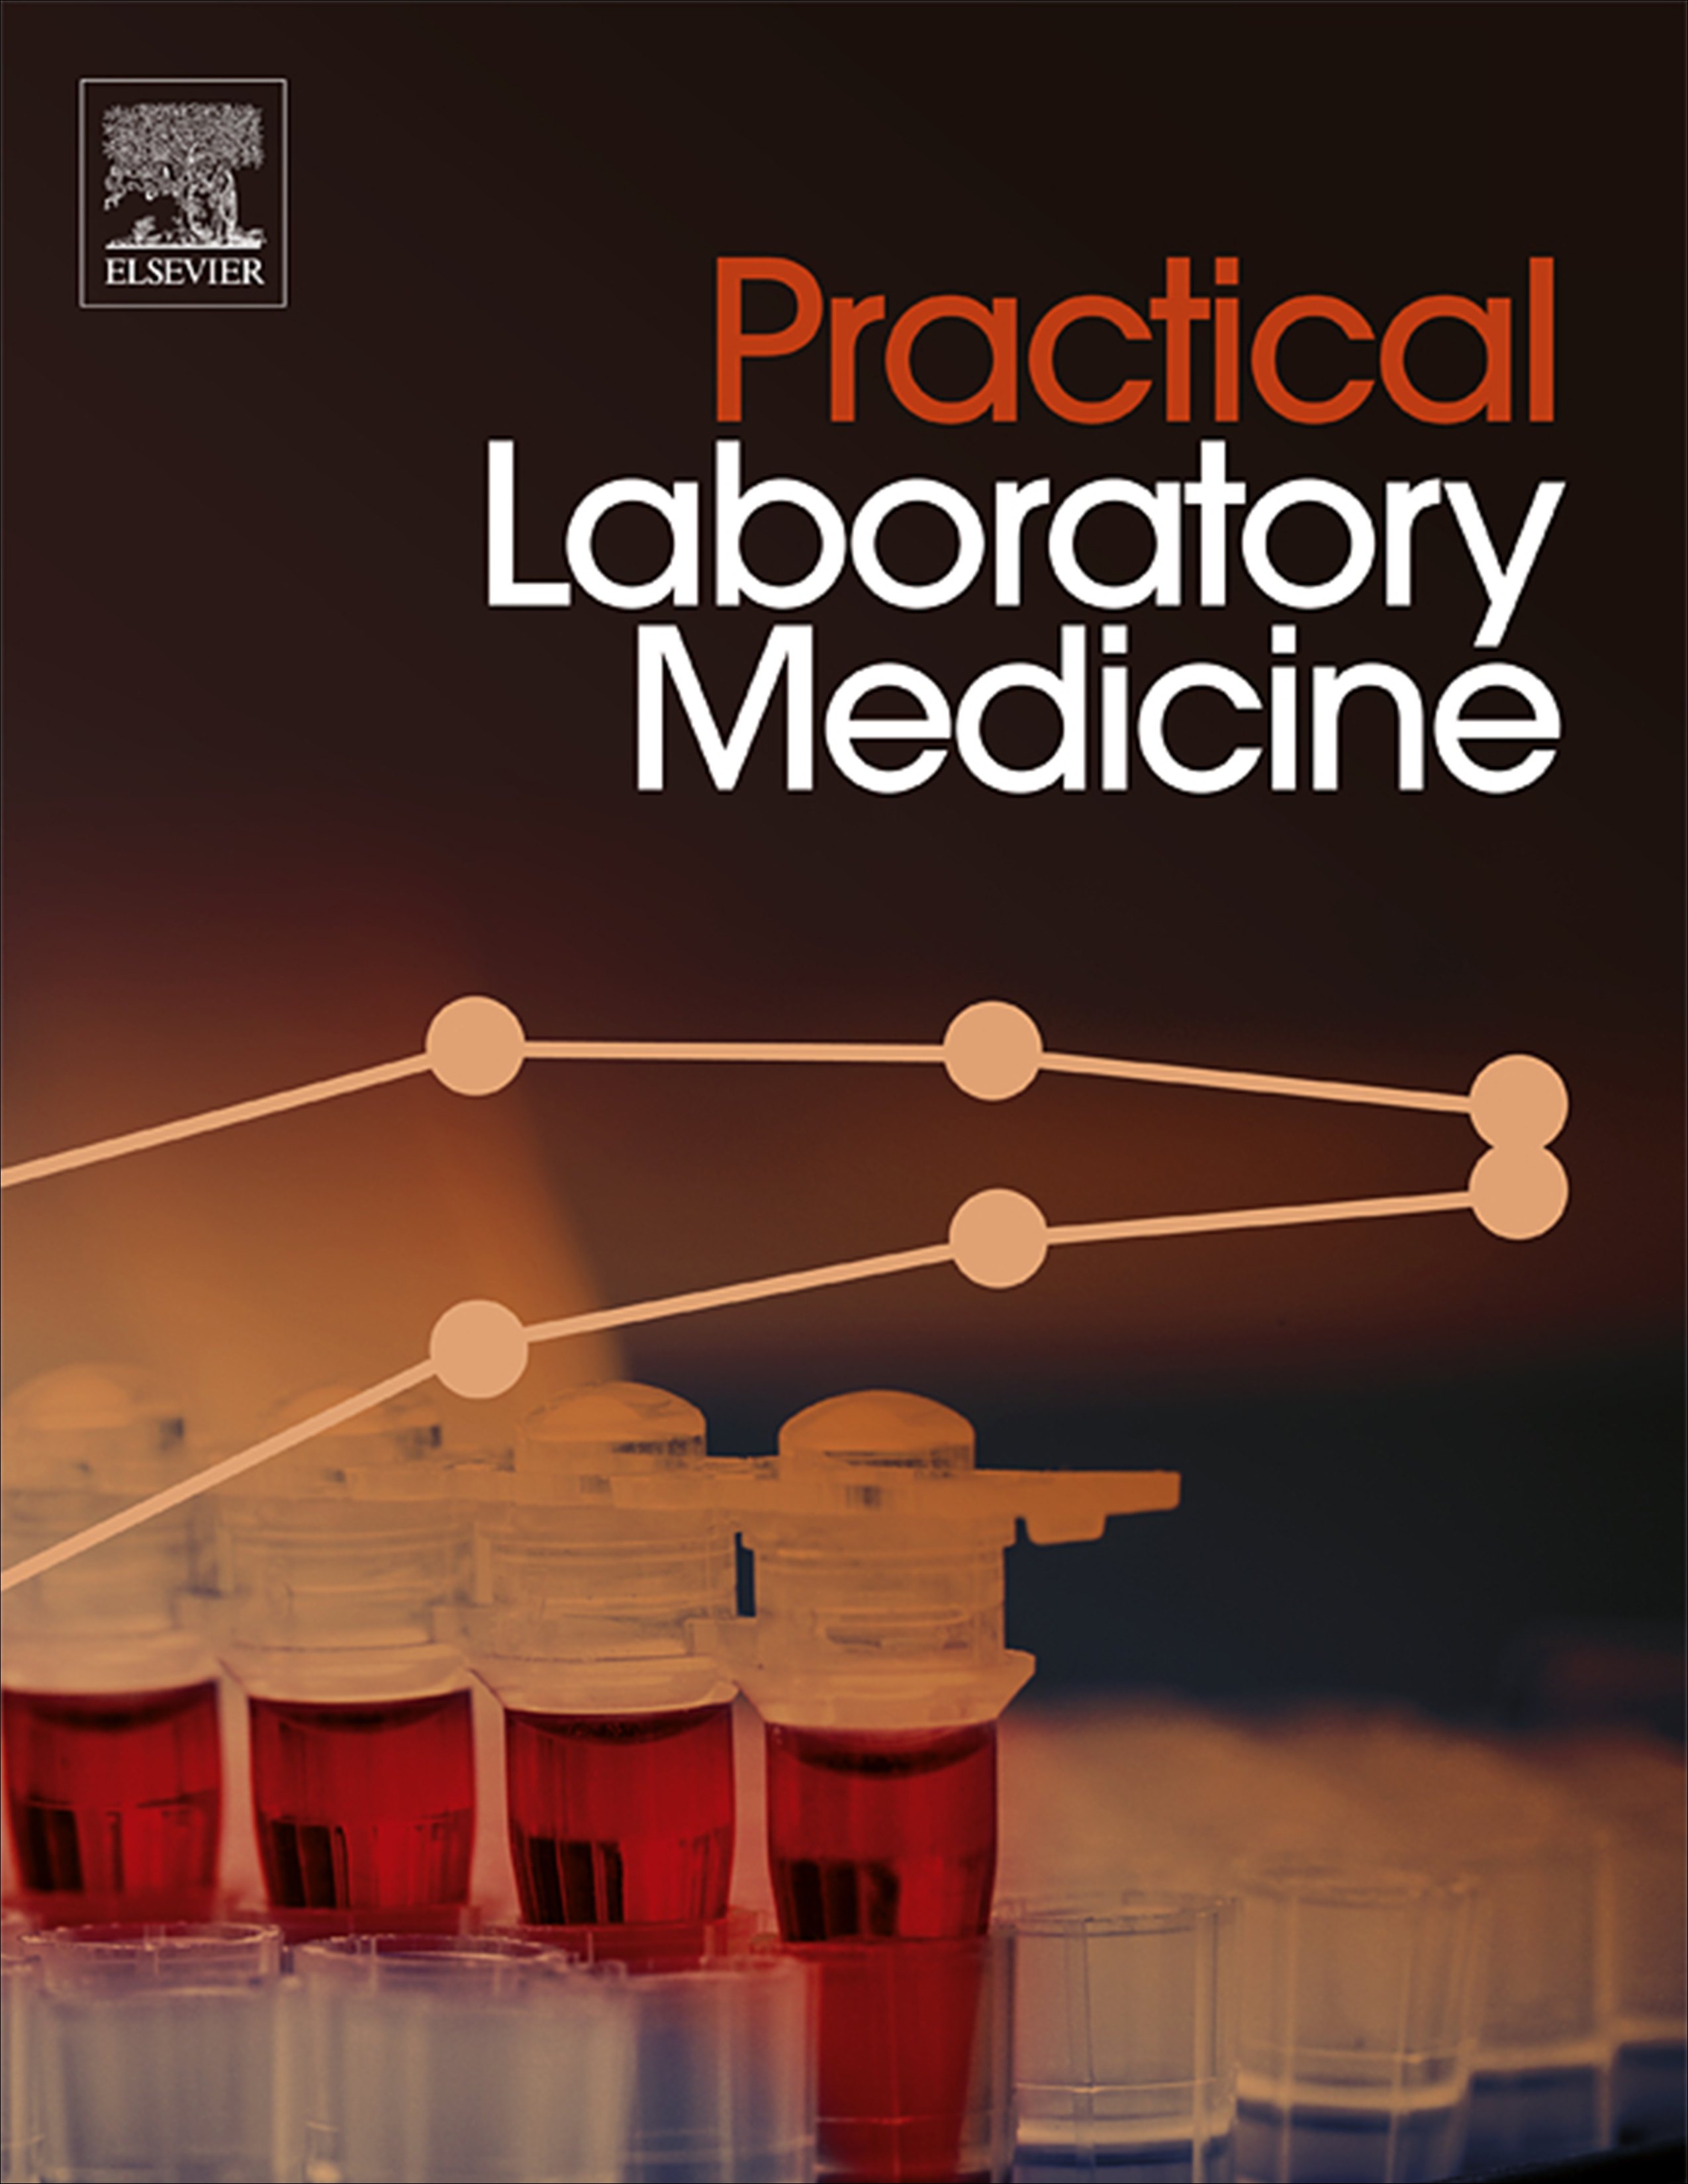 Practical Laboratory Medicine Journal